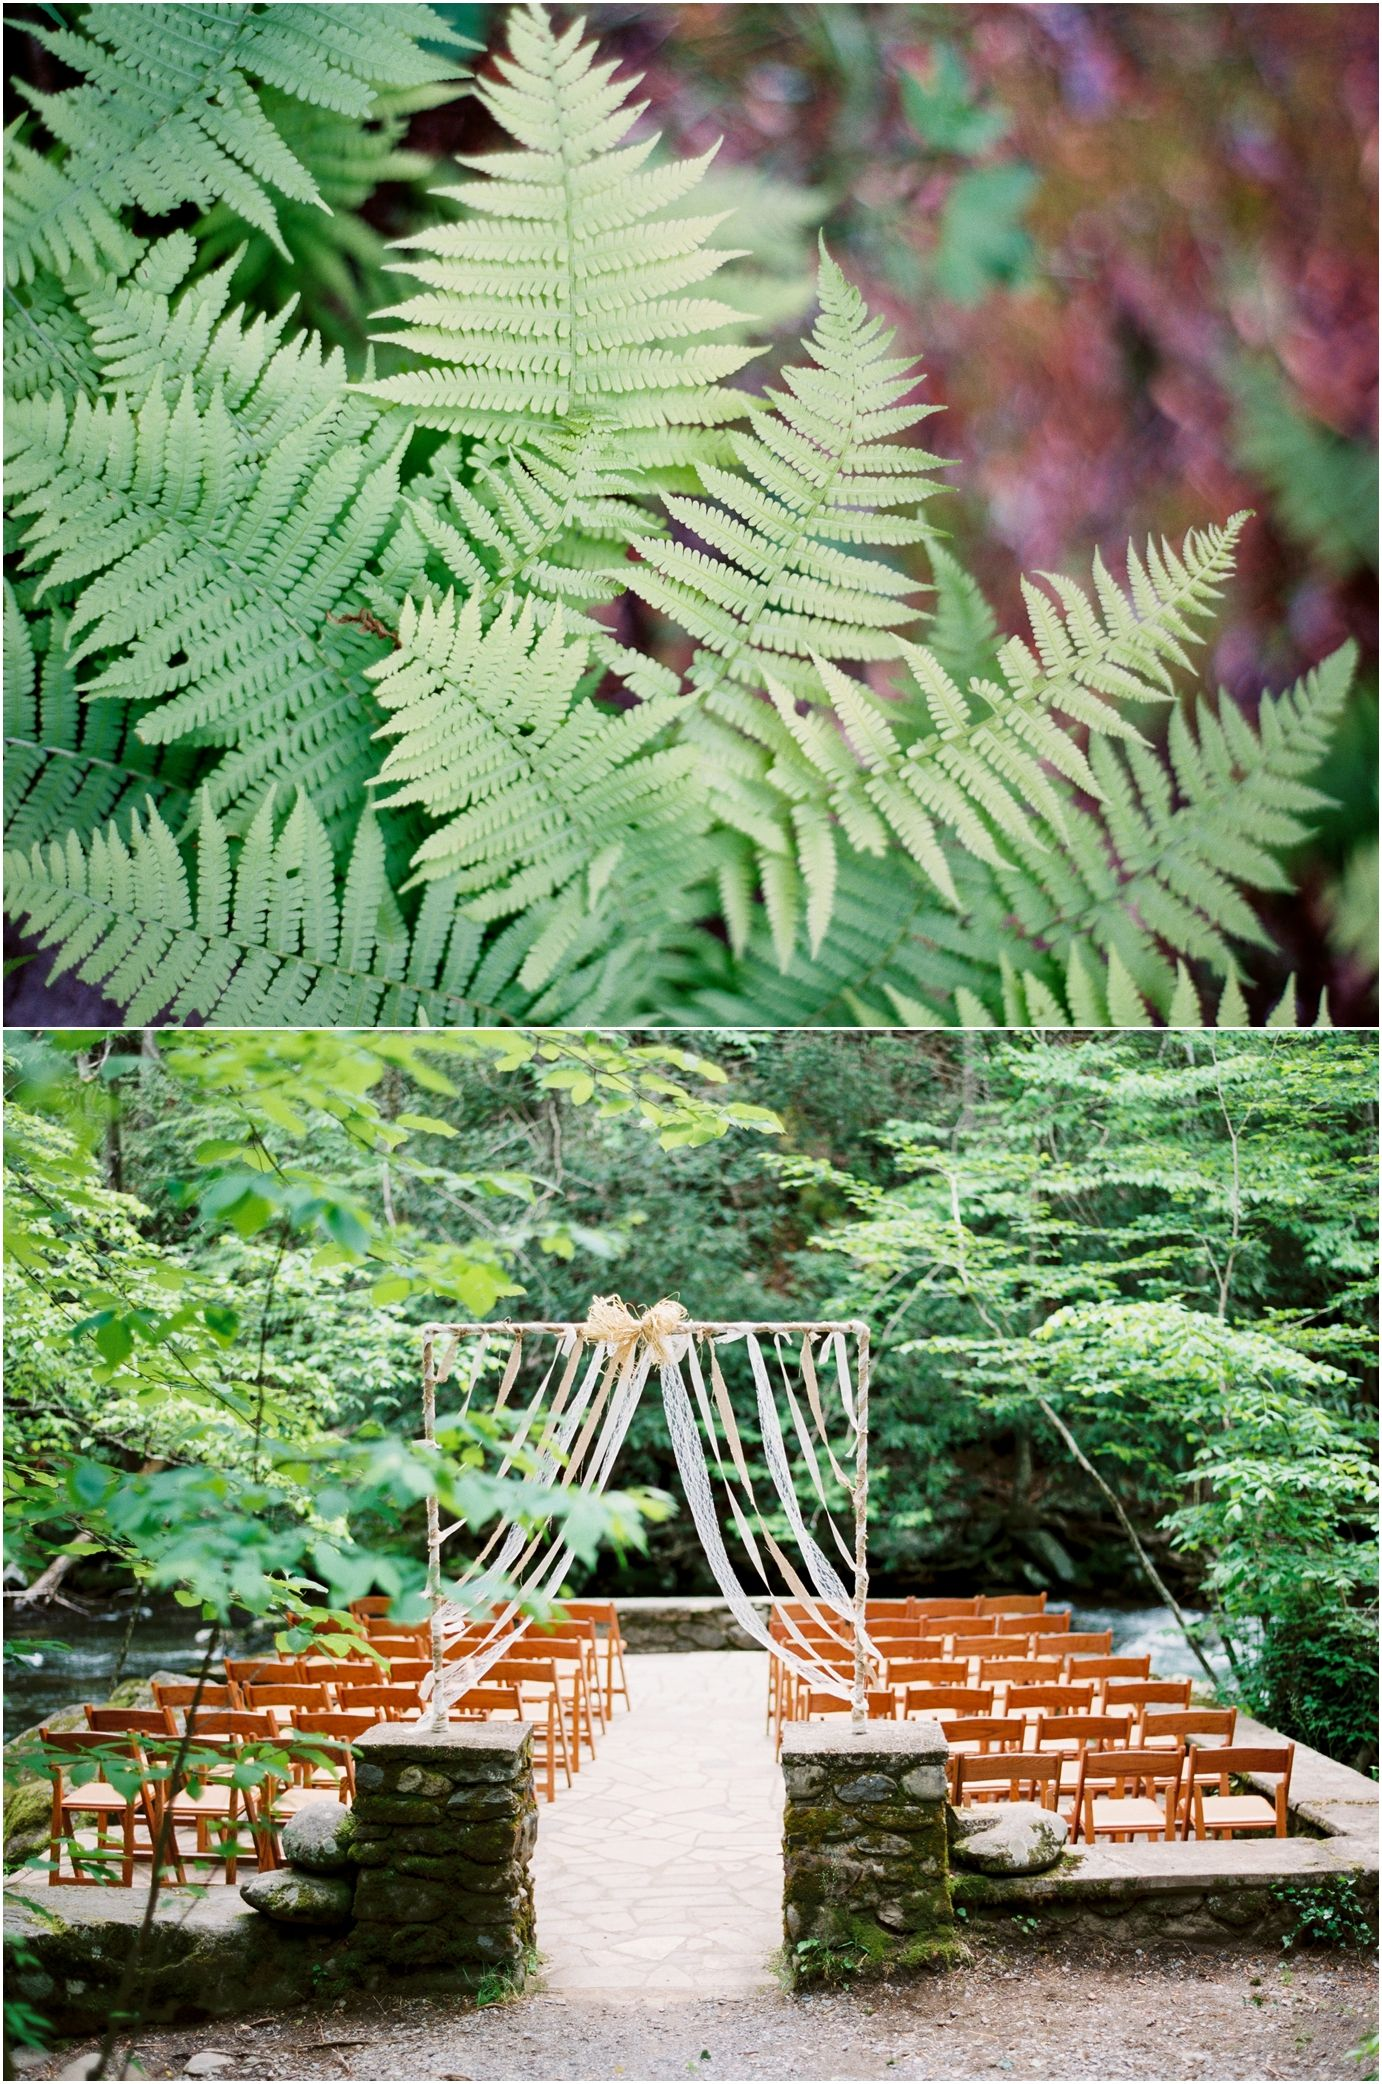 Spence Cabin Wedding in the Great Smoky Mountains National Park - click to view more!